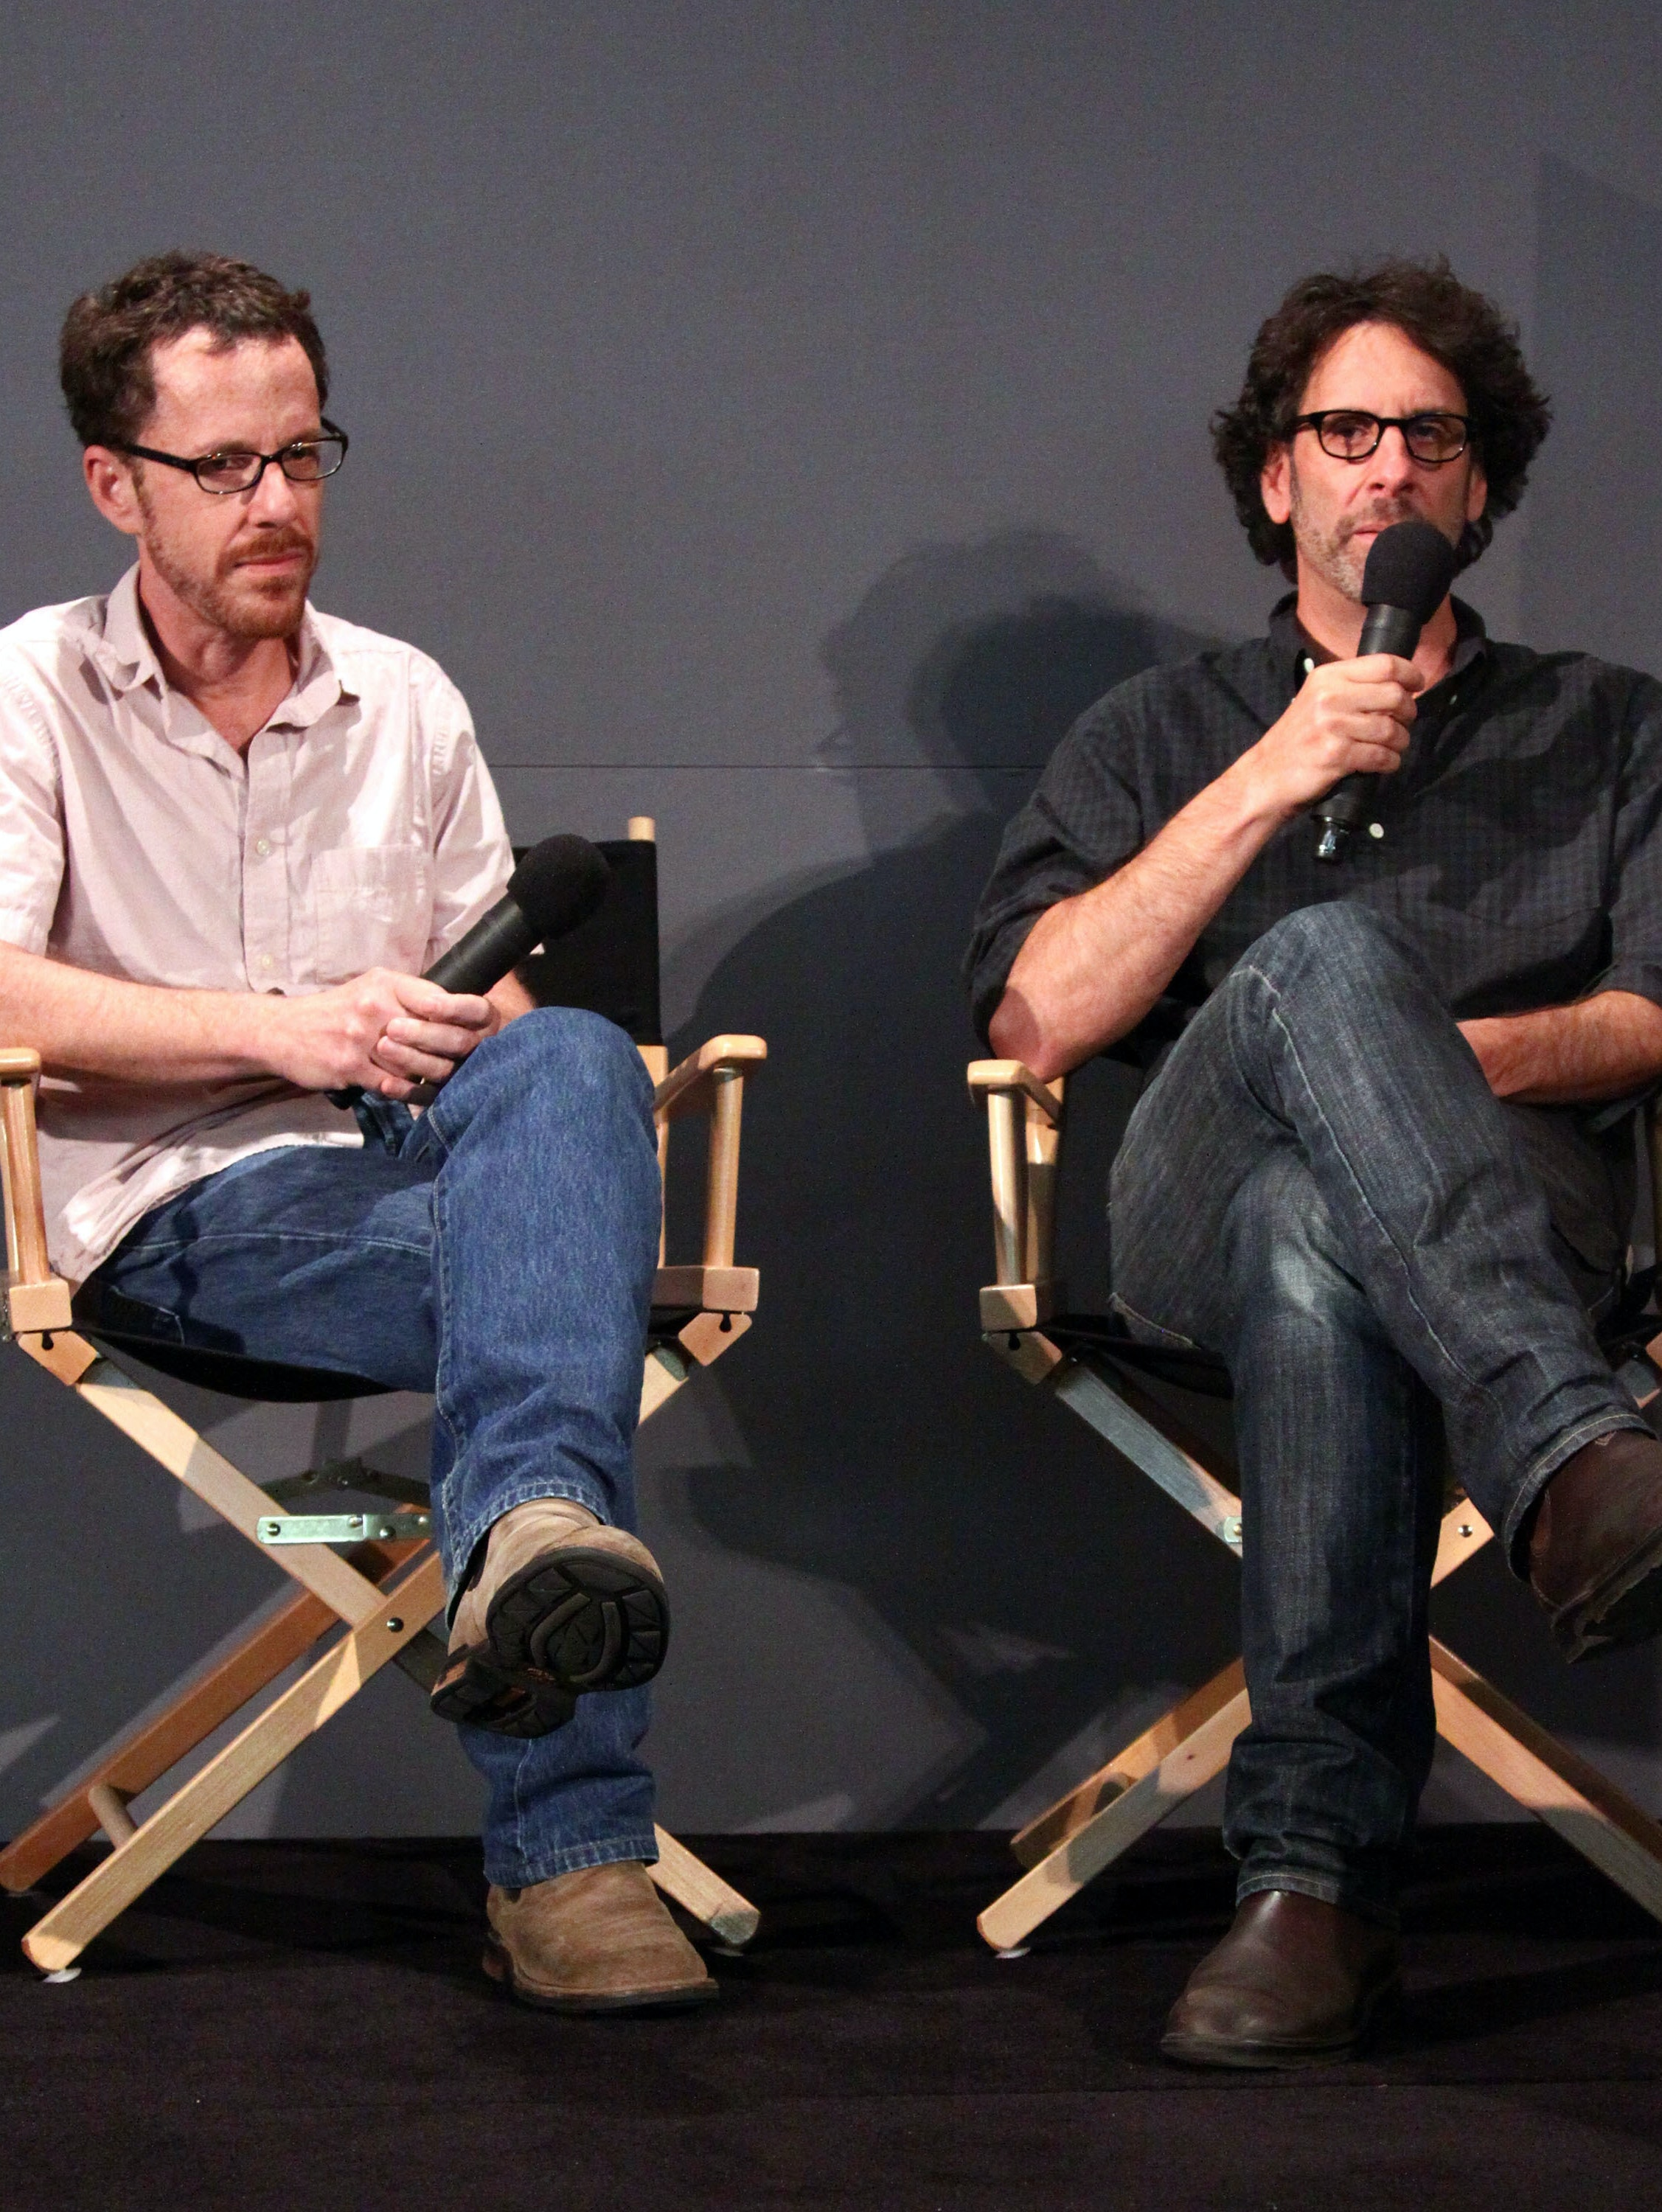 NEW YORK - SEPTEMBER 22:  (L-R) Filmmakers Ethan Coen and Joel Coen visit the Apple Store Soho on September 22, 2009 in New York City.  (Photo by Astrid Stawiarz/Getty Images)